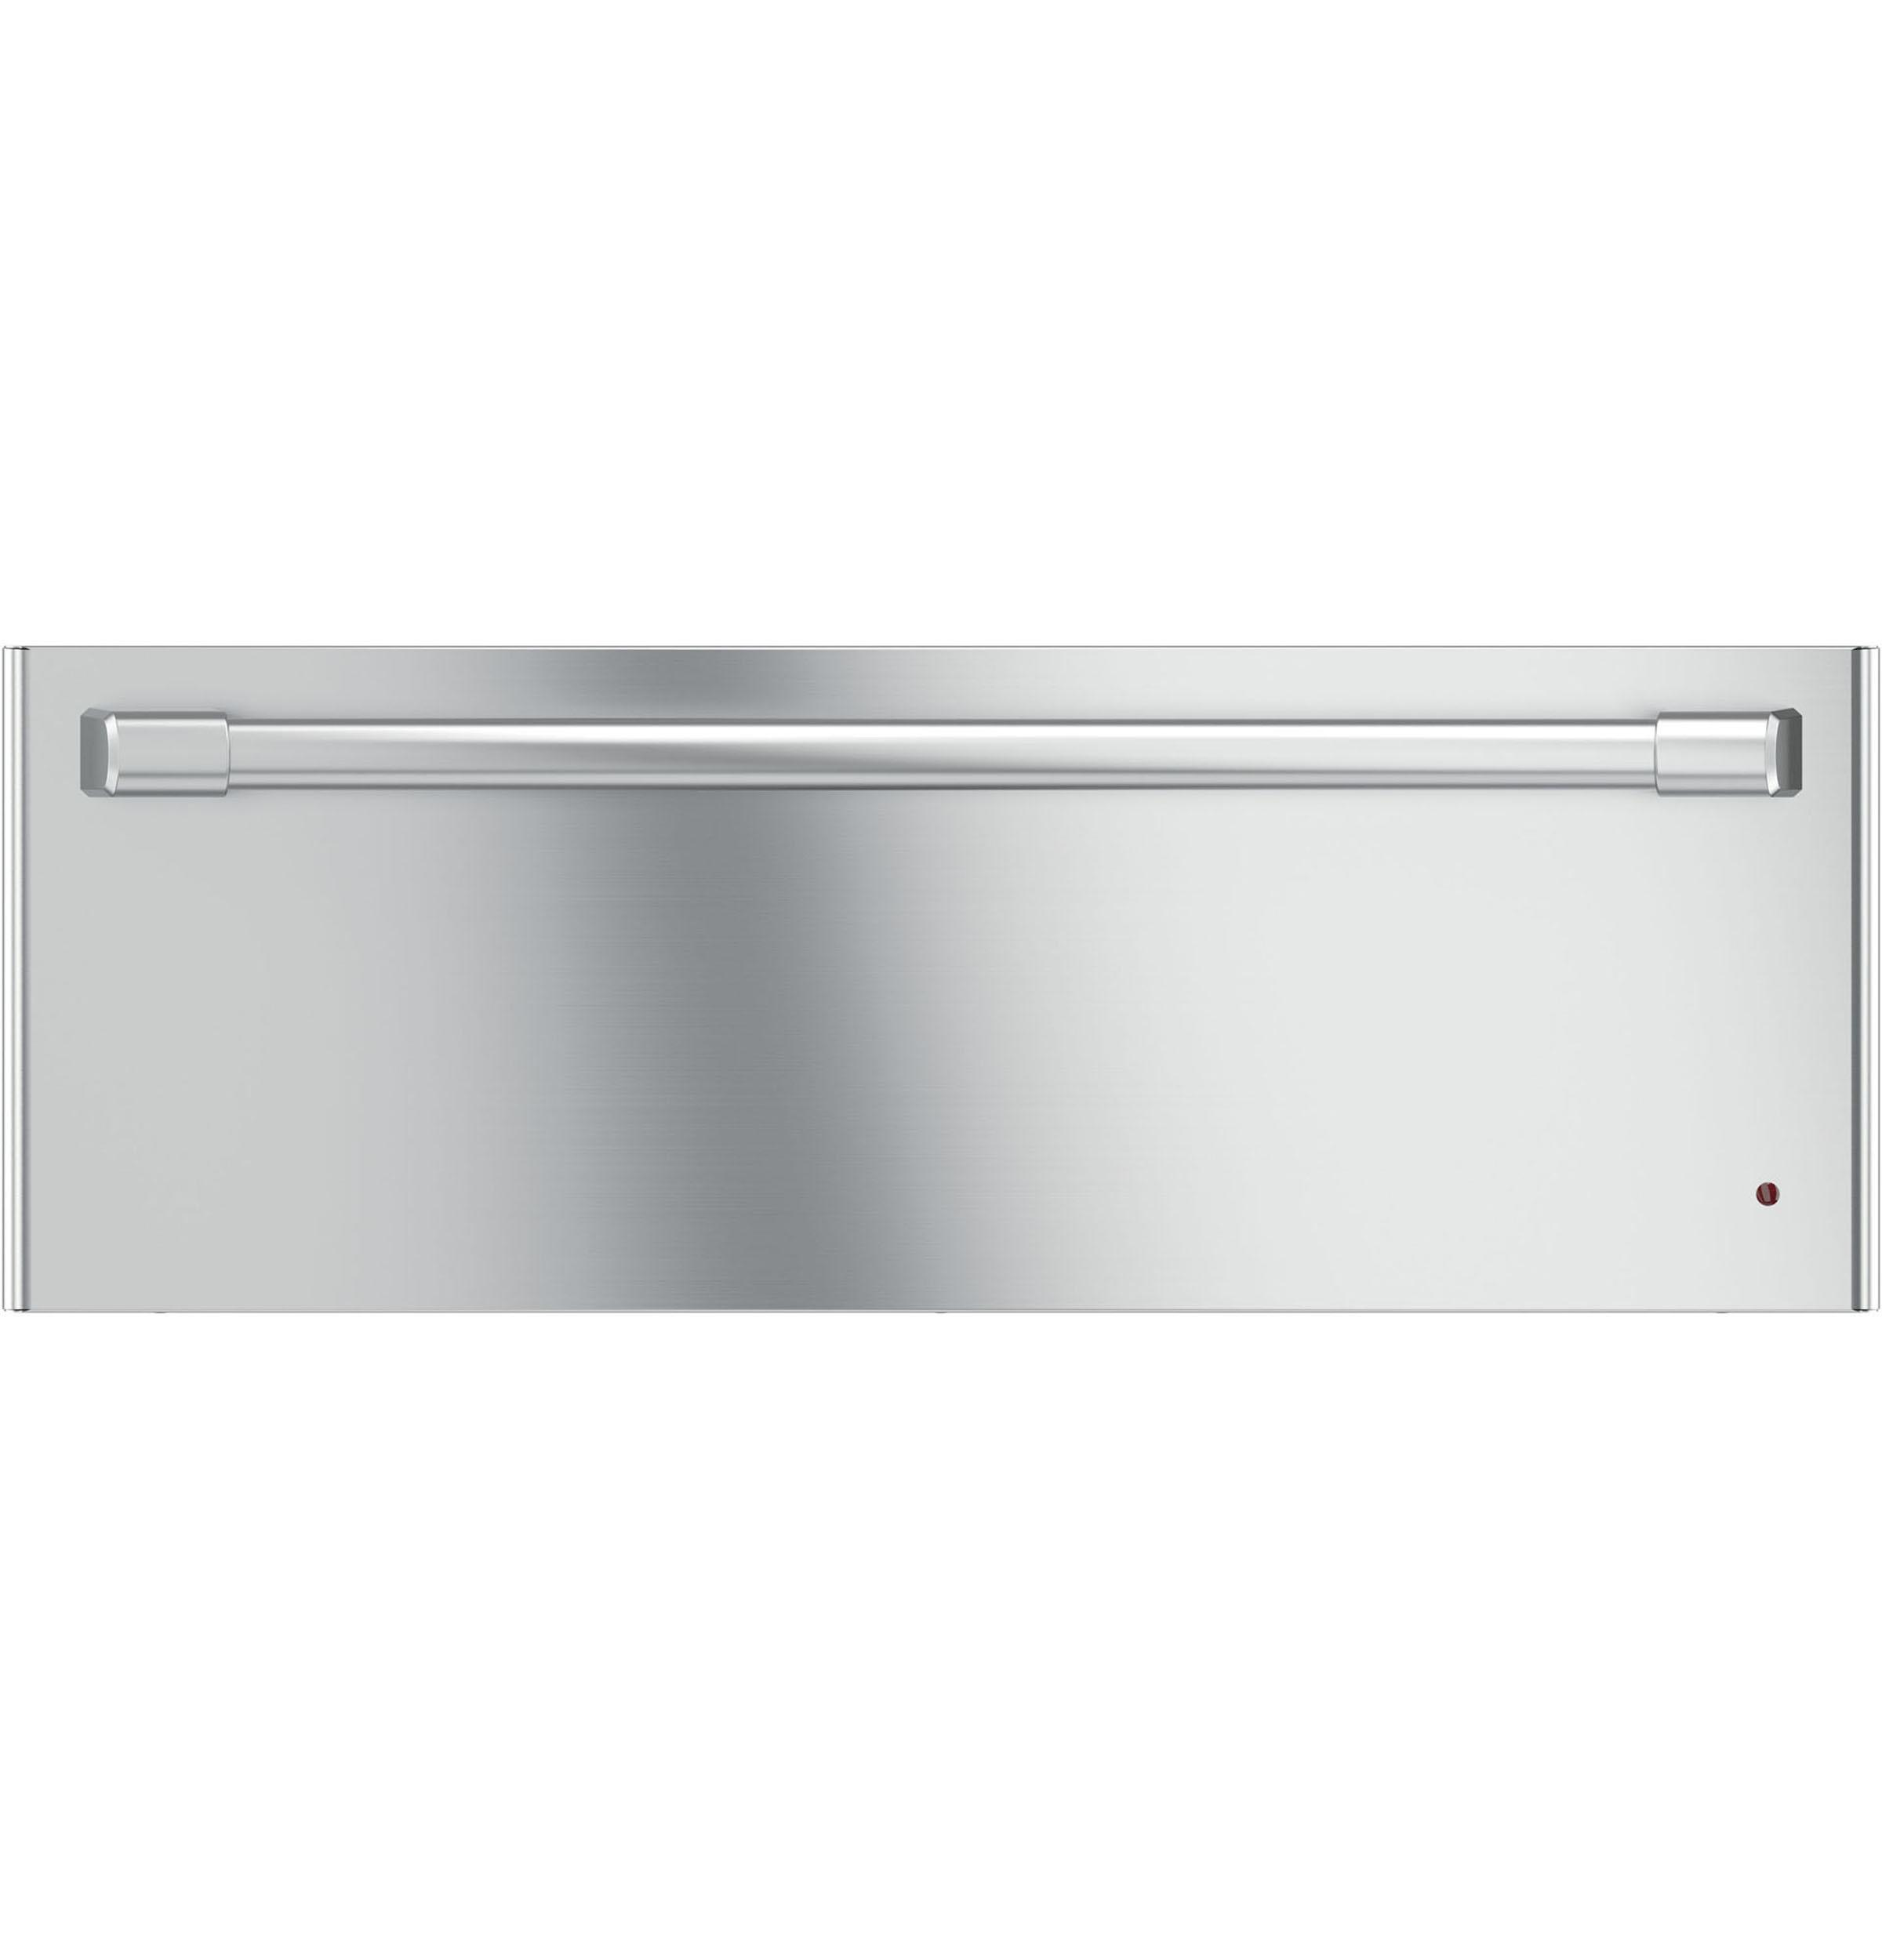 "GE Cafe(TM) Series 30"" Warming Drawer